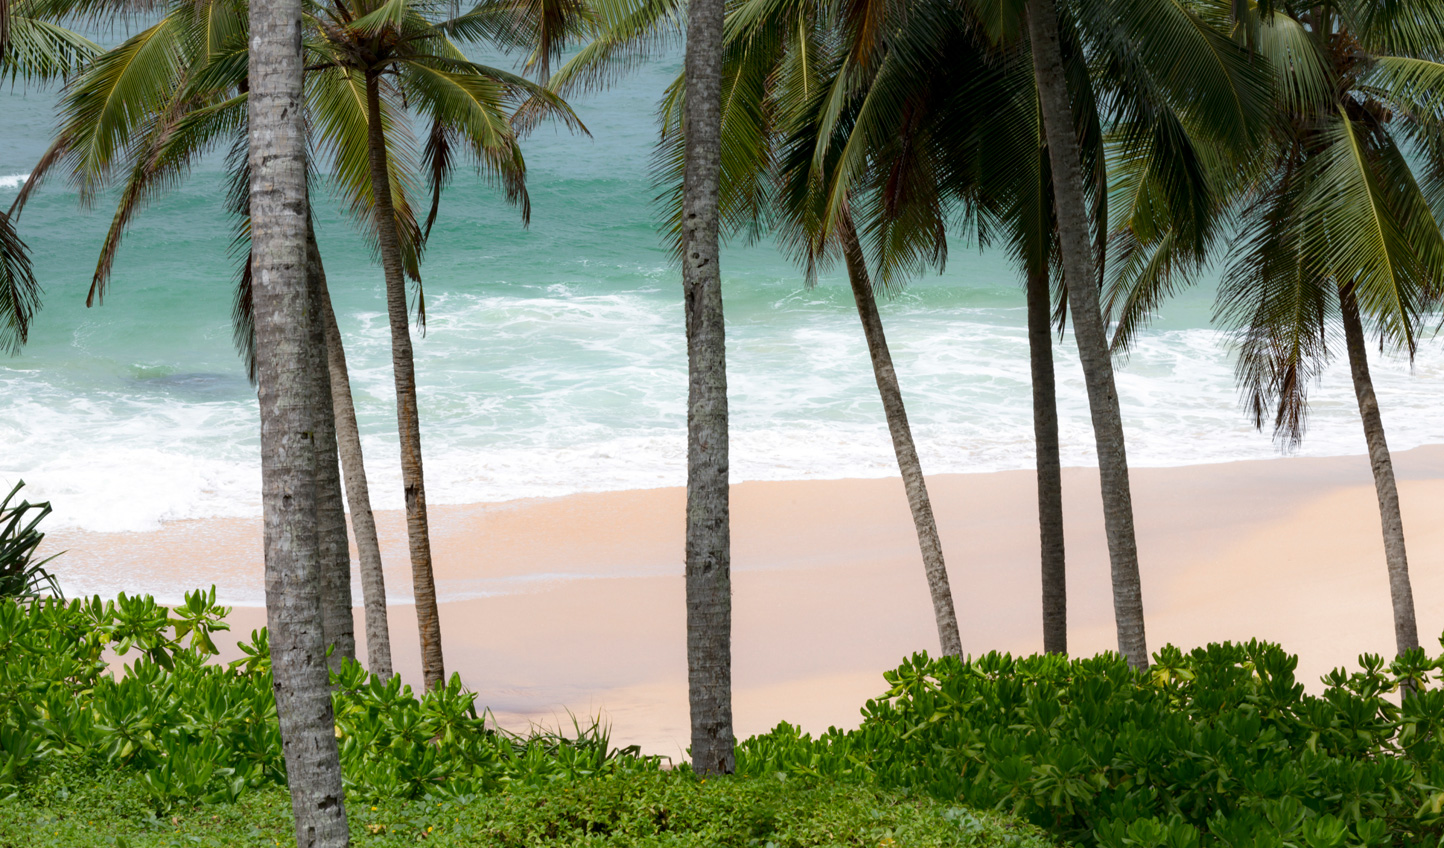 Powder soft sands and tropical hues